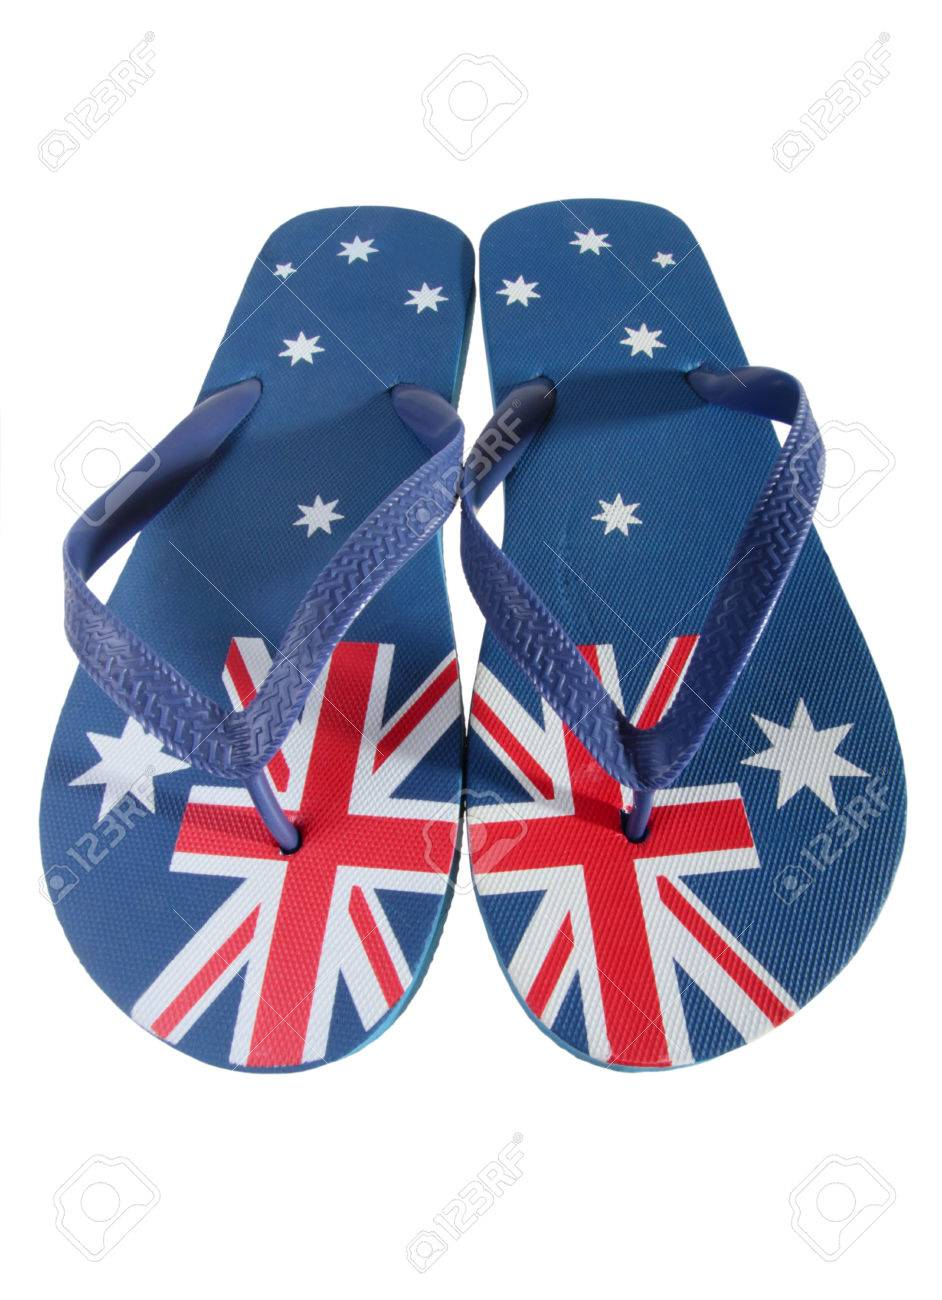 cfcc0814bb31 Pair of thongs with Australian flag isolated on white background Stock  Photo - 40099543